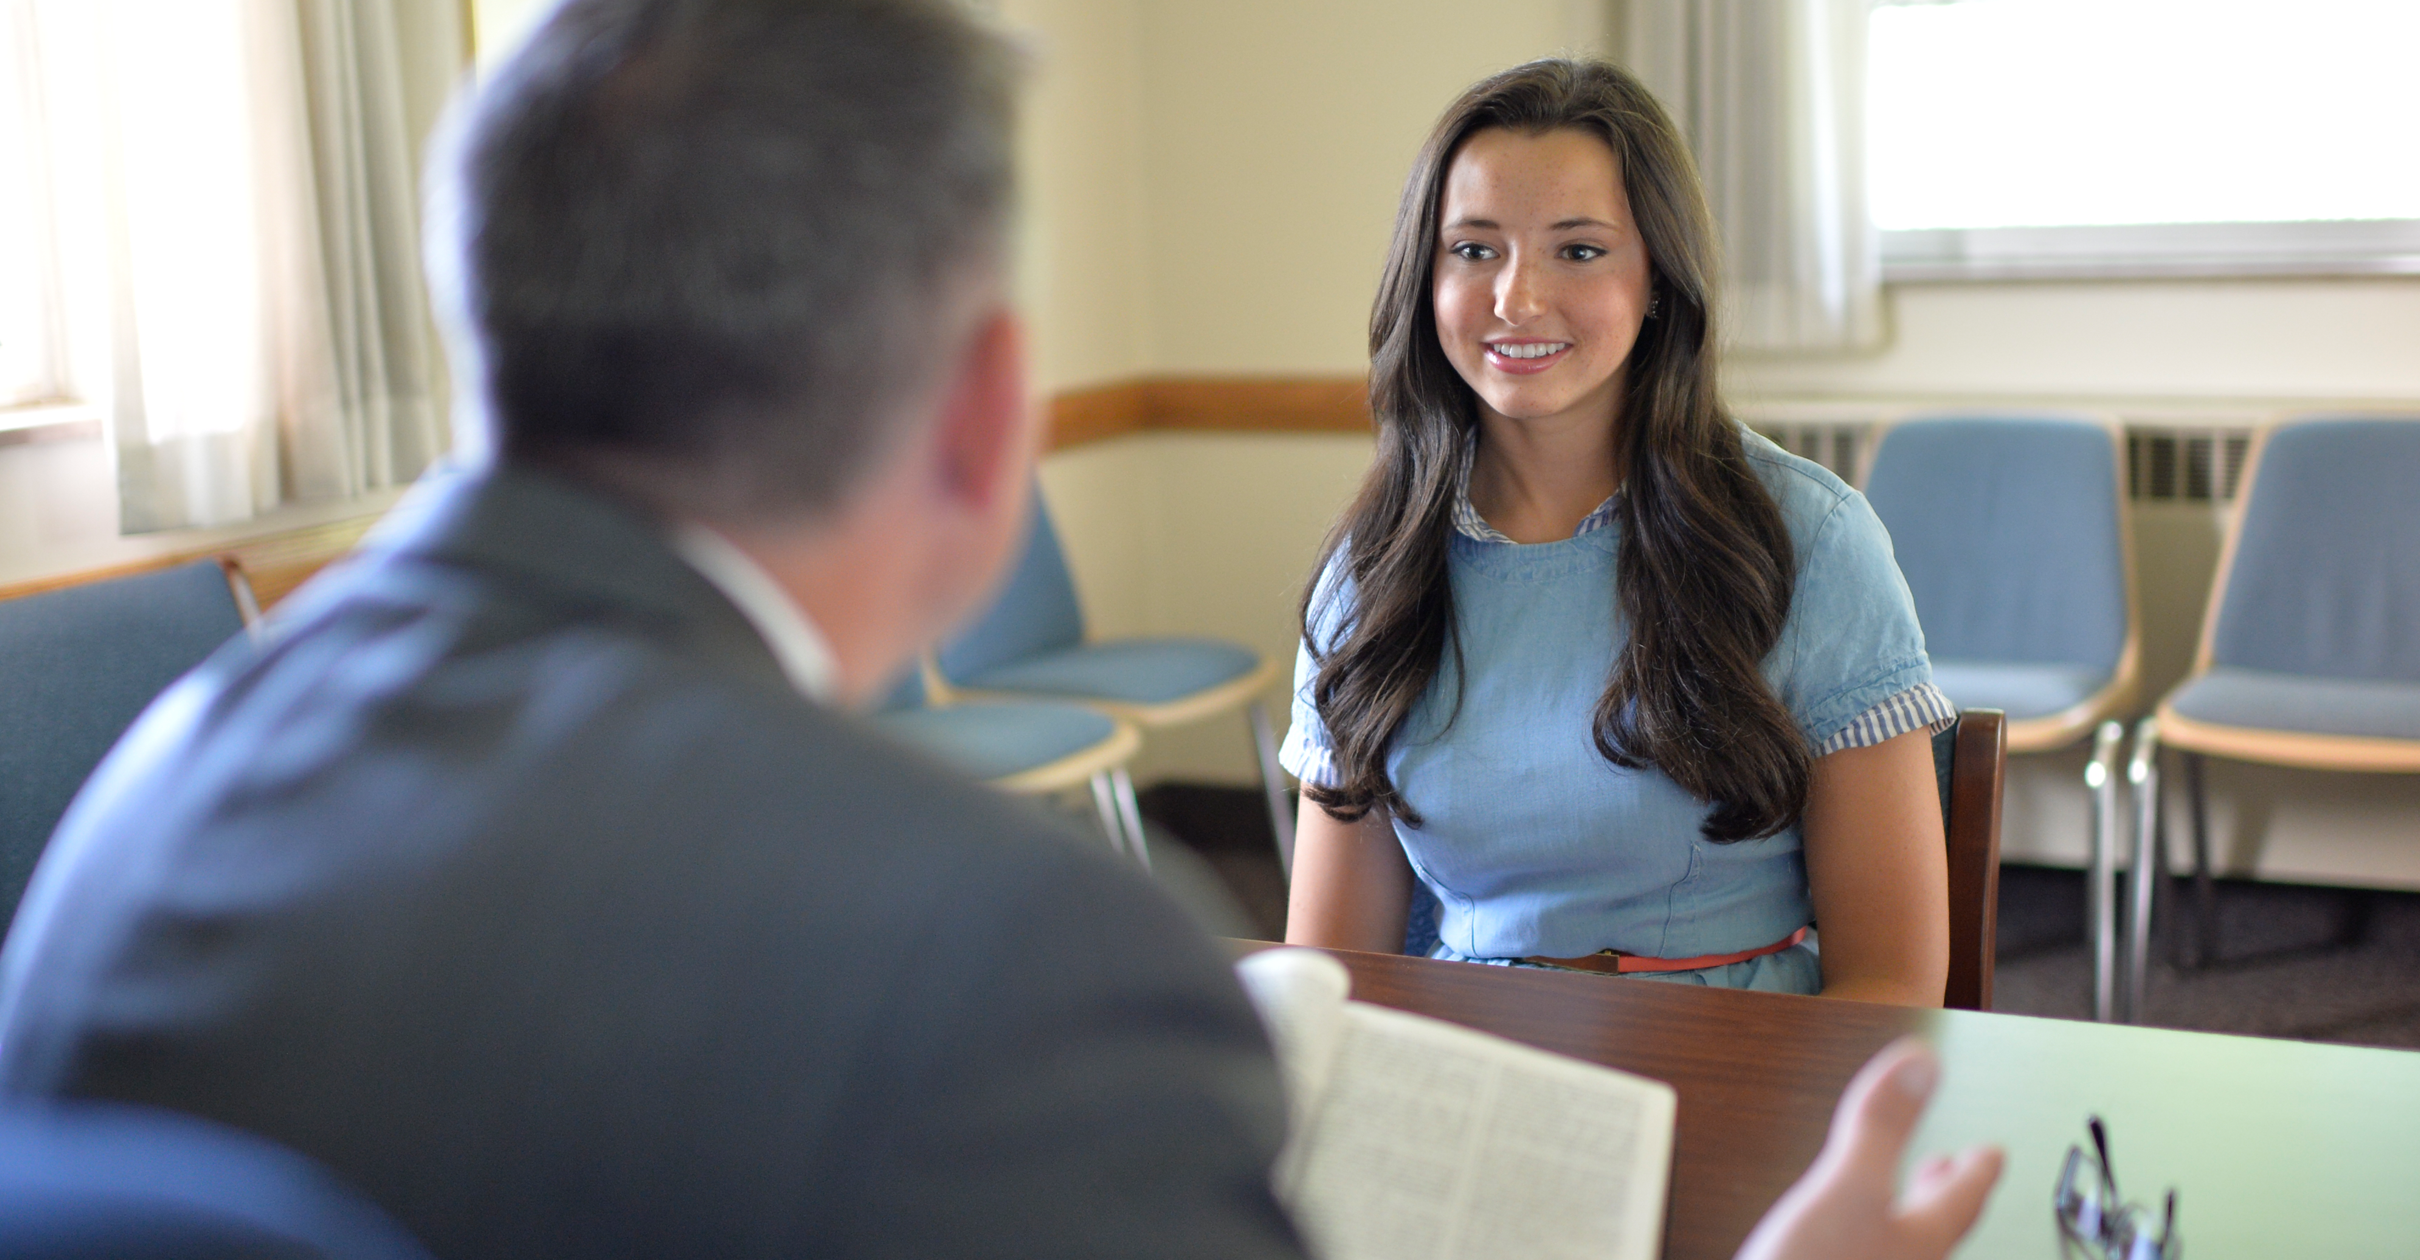 The bishop meets with a young woman. As President Russell M. Nelson emphasized in the October general conference, the primary responsibility of a bishop is to care for the youth.